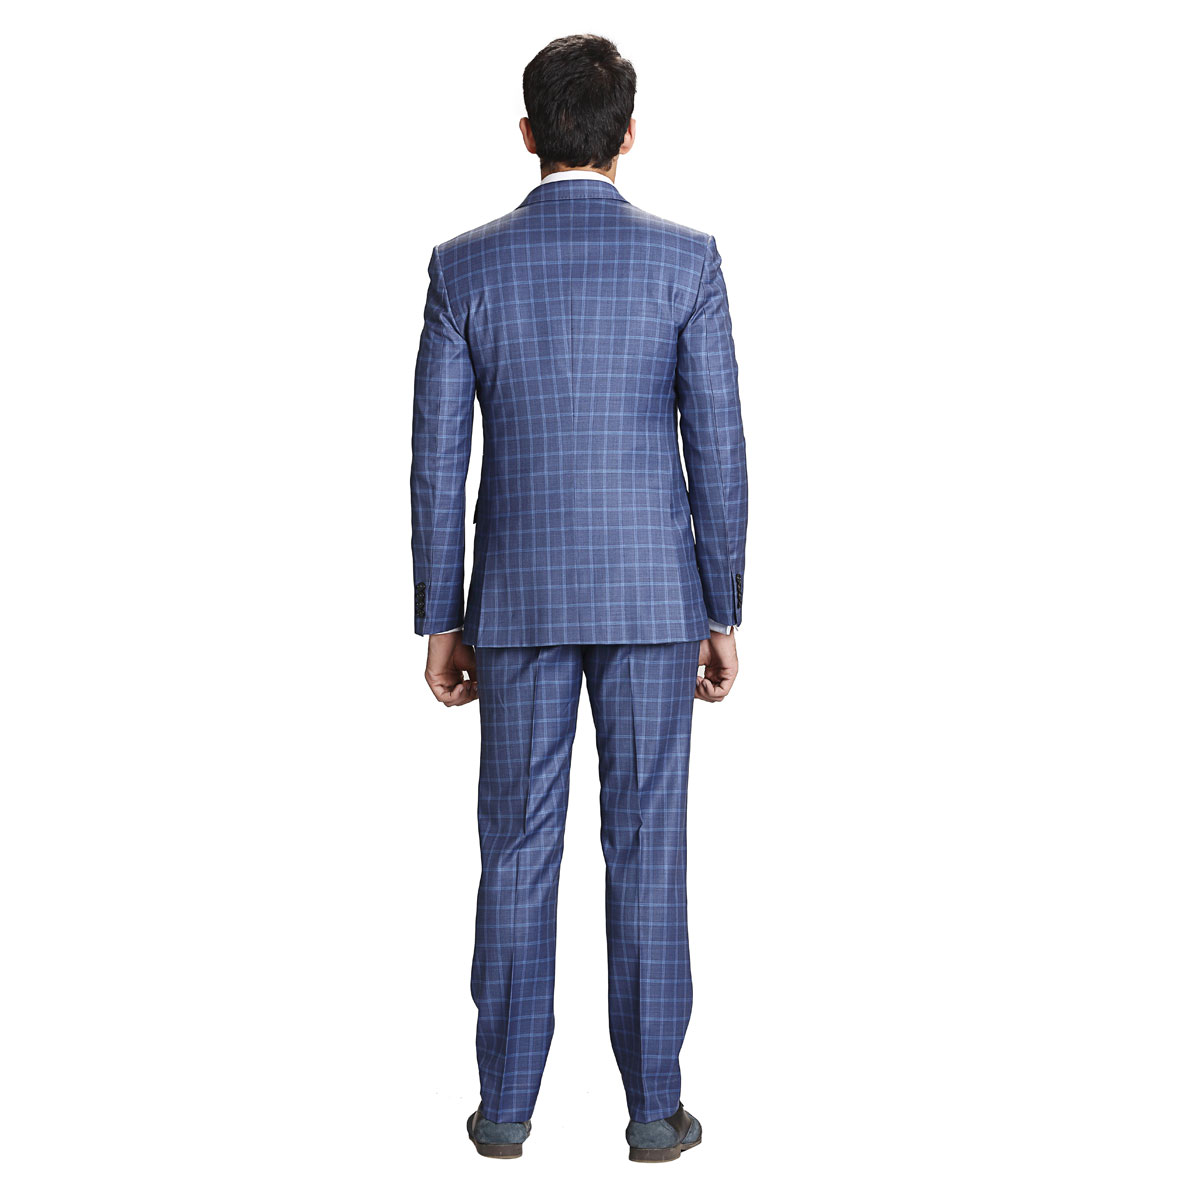 Blue Blood Check Suit - Best Bespoke Suits. Premium Custom ...